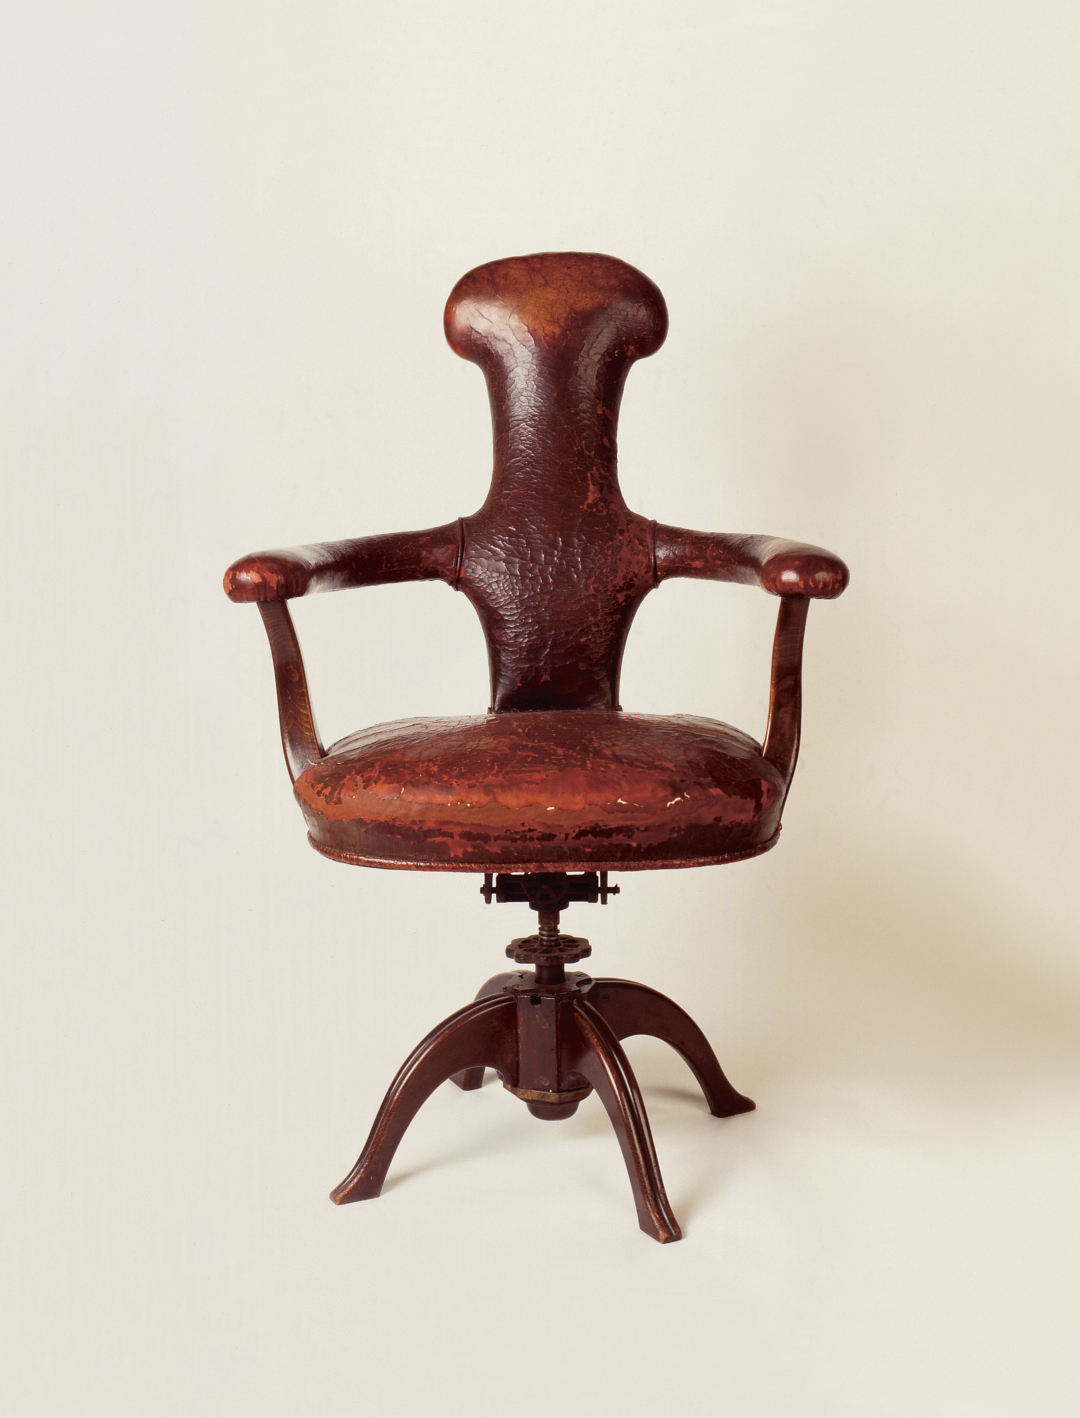 Sigmund Freudu0027s Office Chair (1930) By Felix Augenfeld And Karl Hofmann